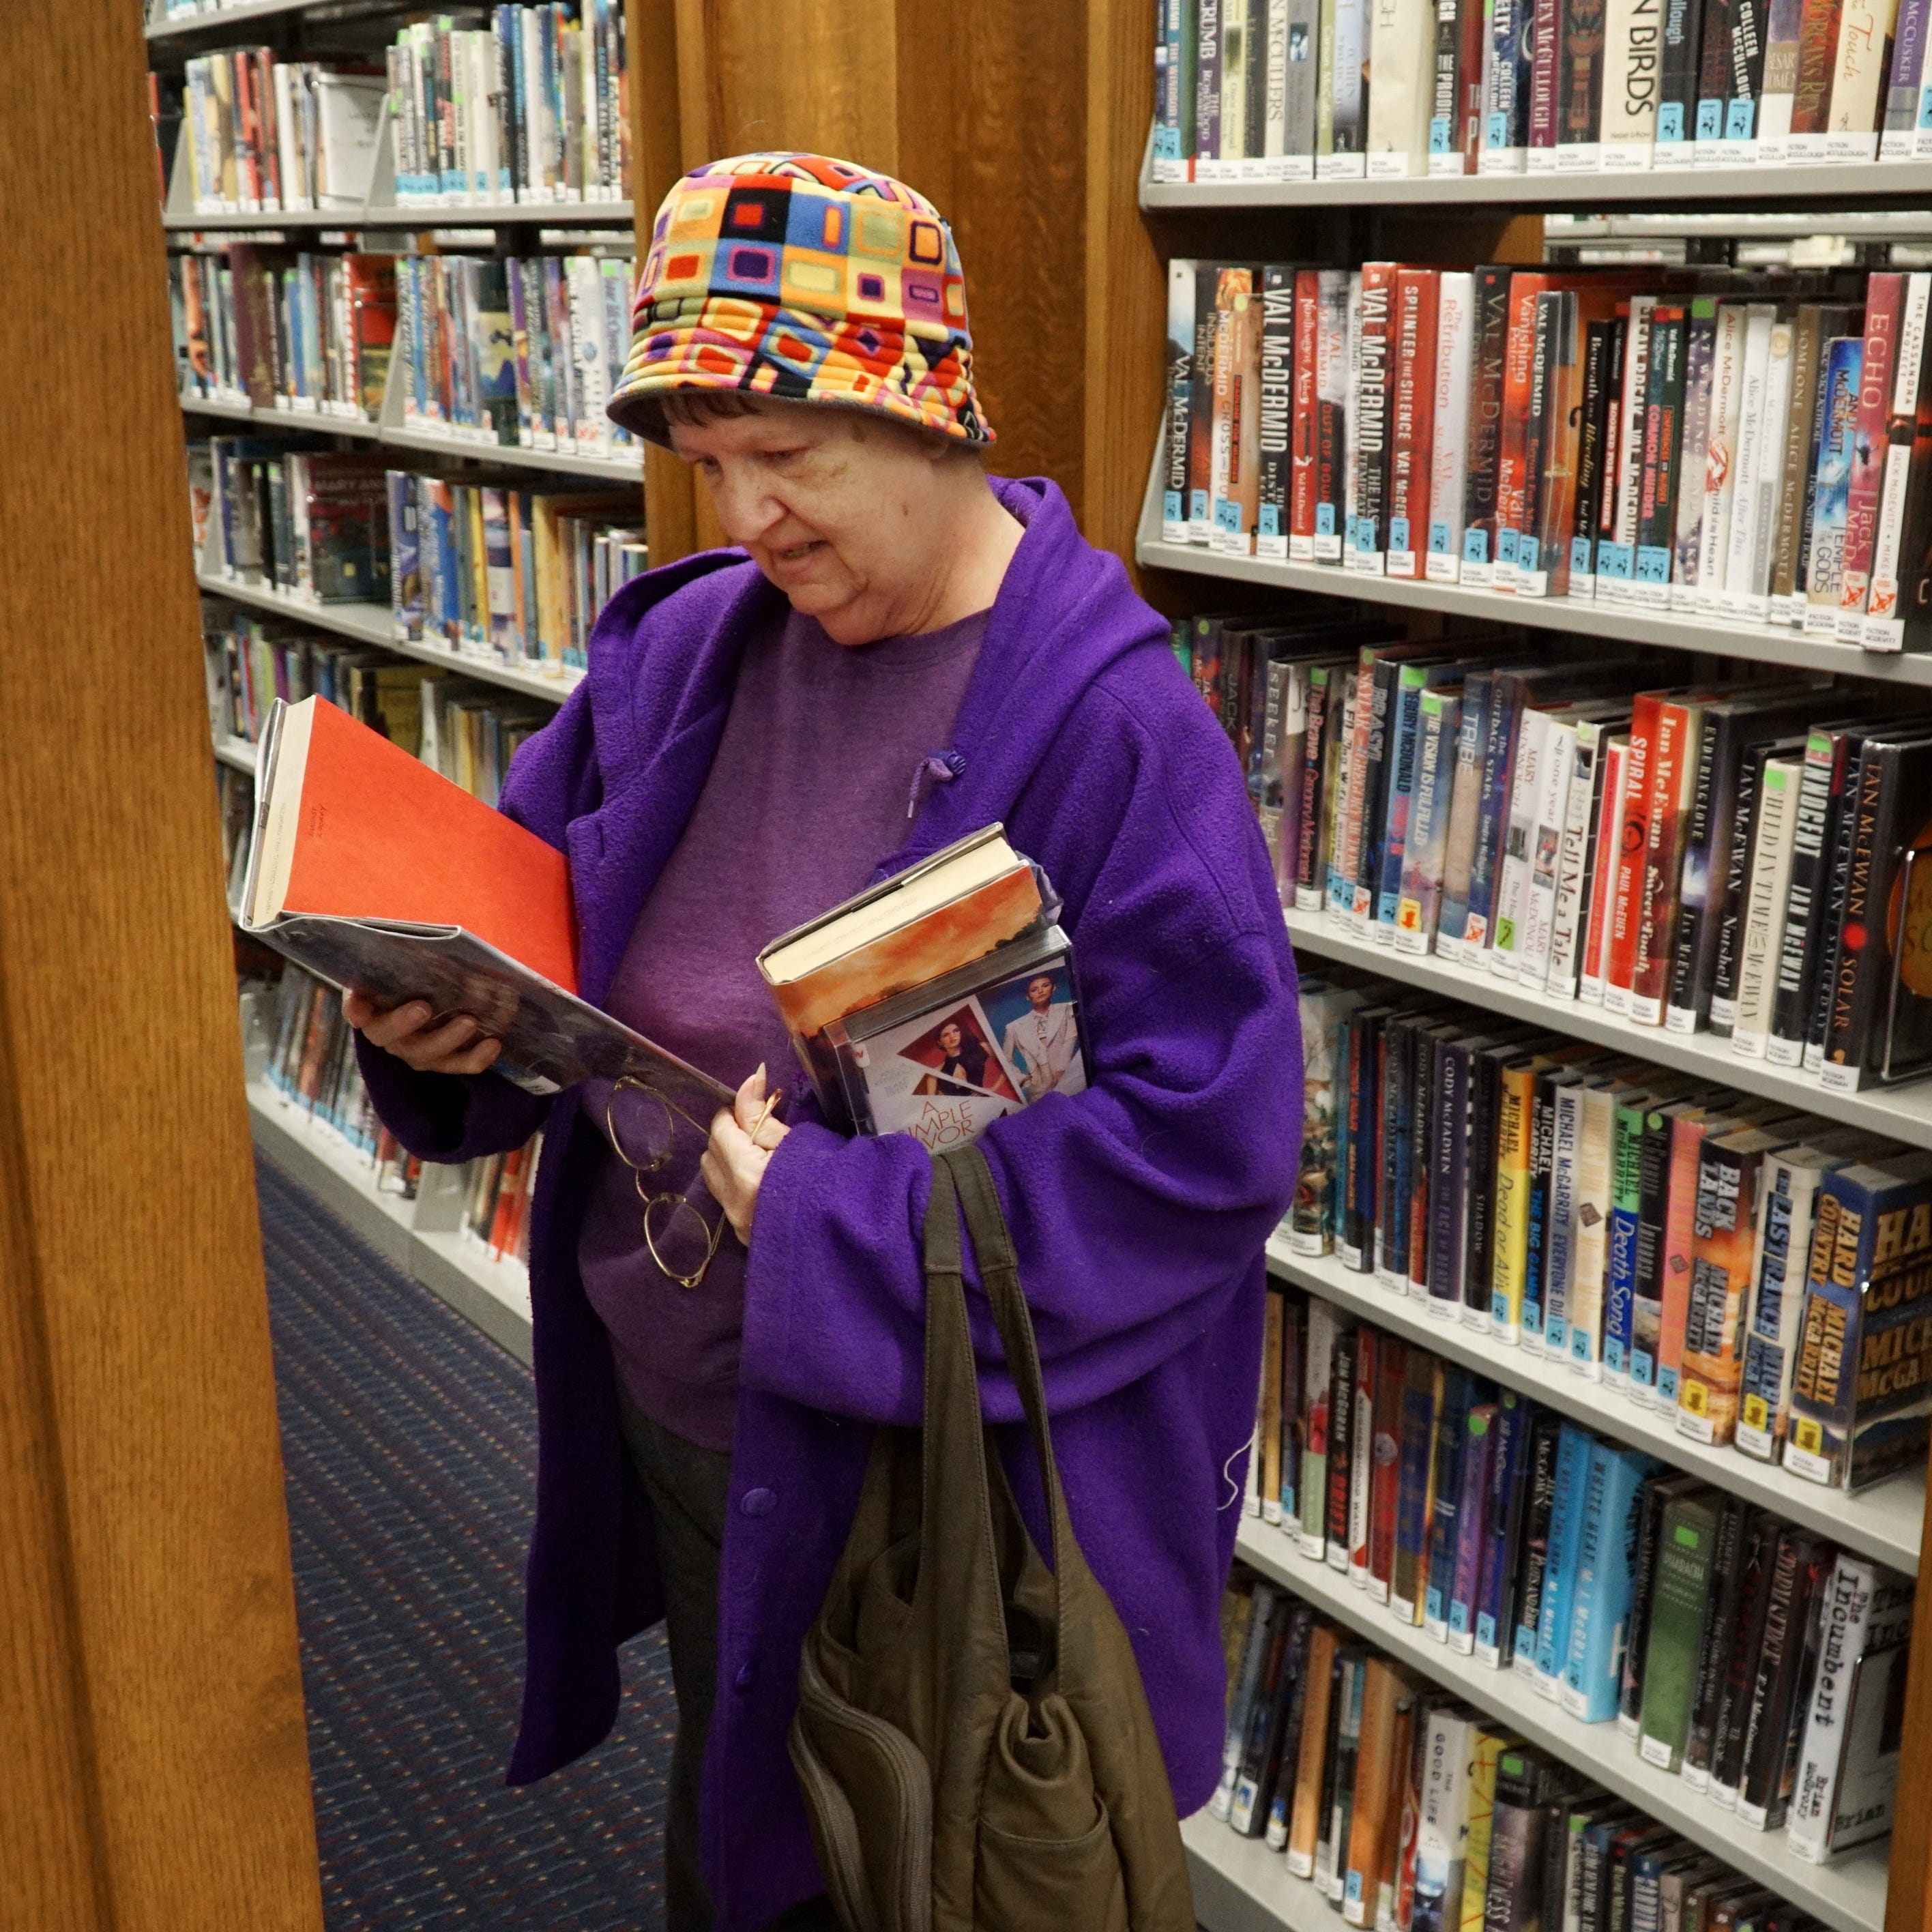 No foolin': Redford library eliminate fines for returning materials late